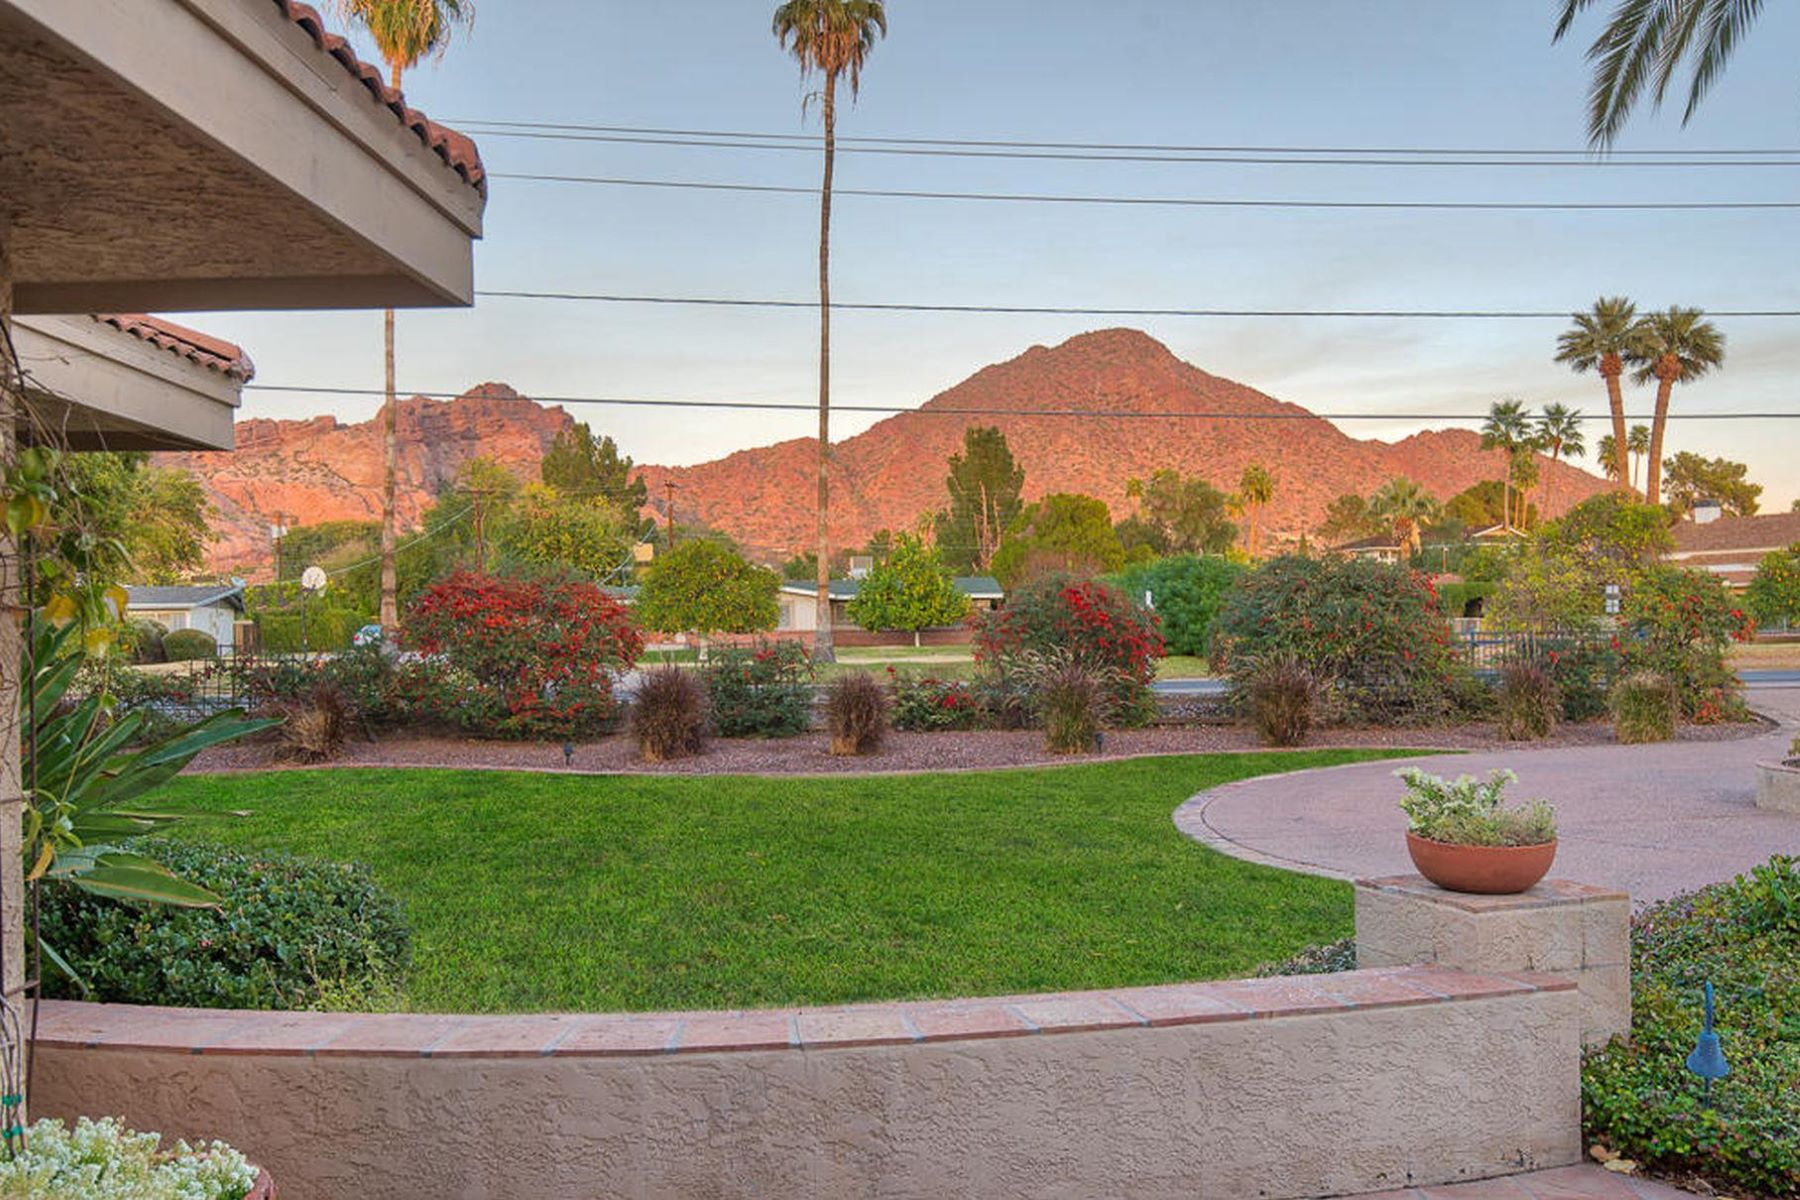 Single Family Home for Sale at Wonderful family home with Camelback mountain view 4565 E Lafayette Blvd, Phoenix, Arizona, 85018 United States